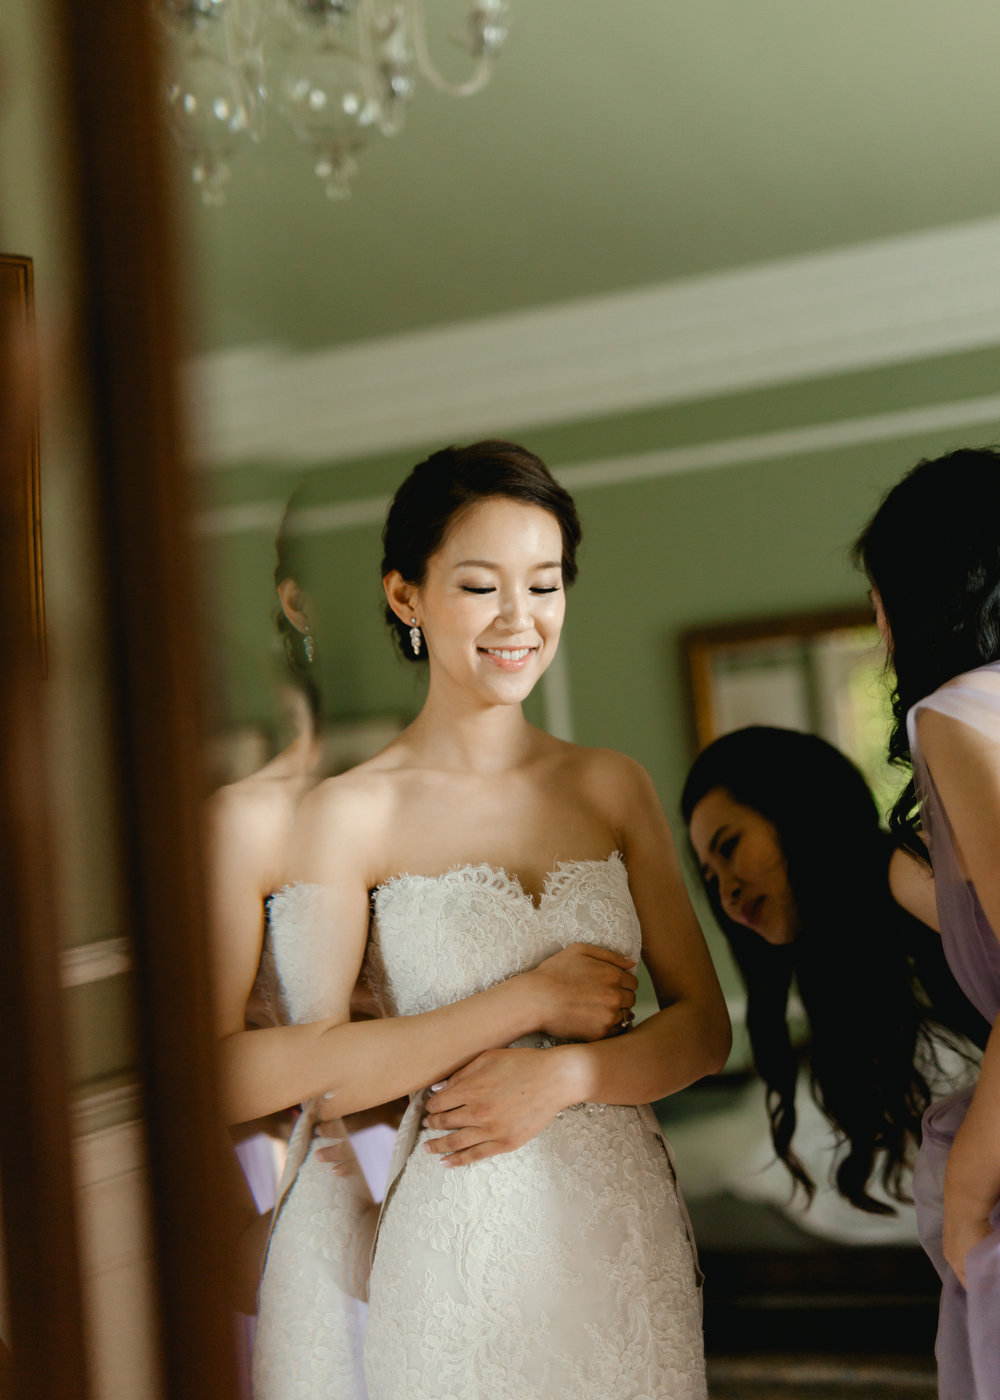 herafilms_wedding_sara_lei_hera_selects-17.jpg